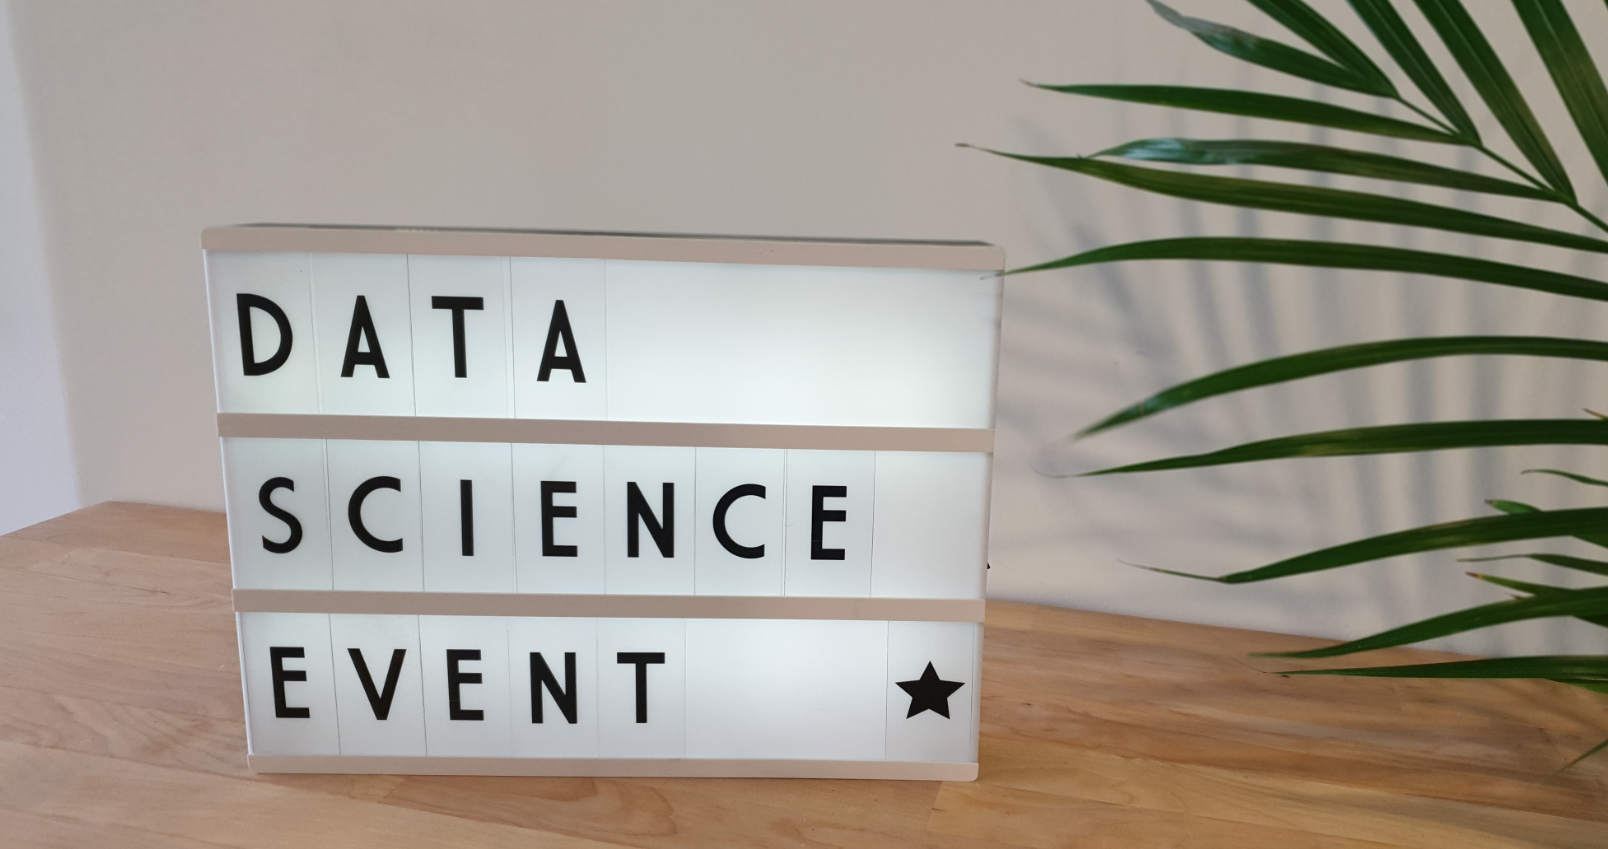 Are you [R]eady for production? The Data Science Event 2019 – Register now!